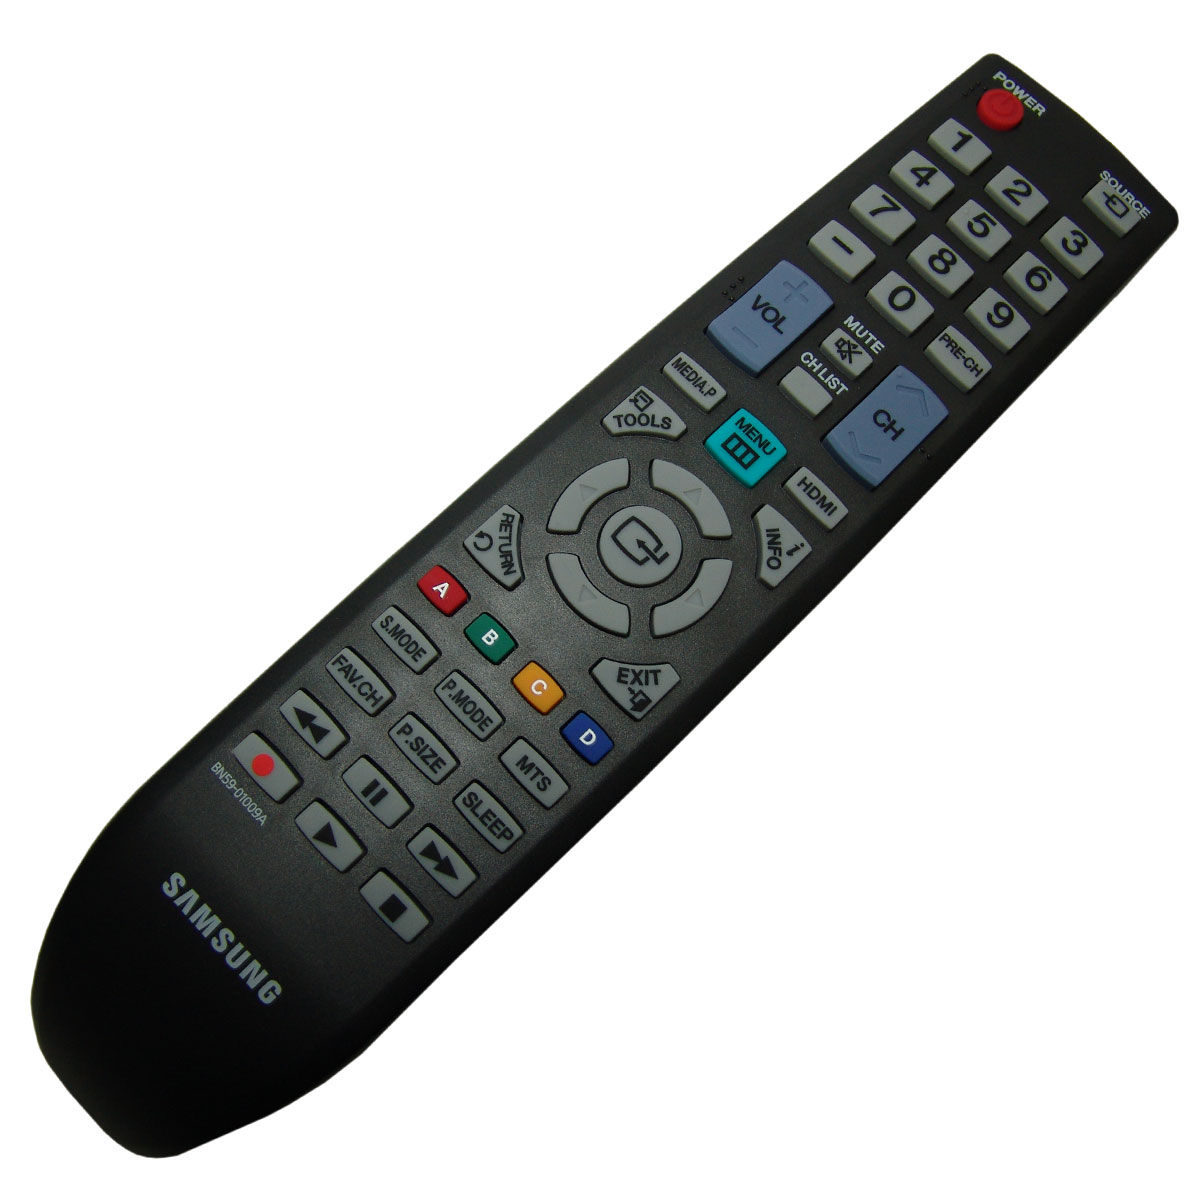 samsung replacement remote control bn59 01009a. Black Bedroom Furniture Sets. Home Design Ideas